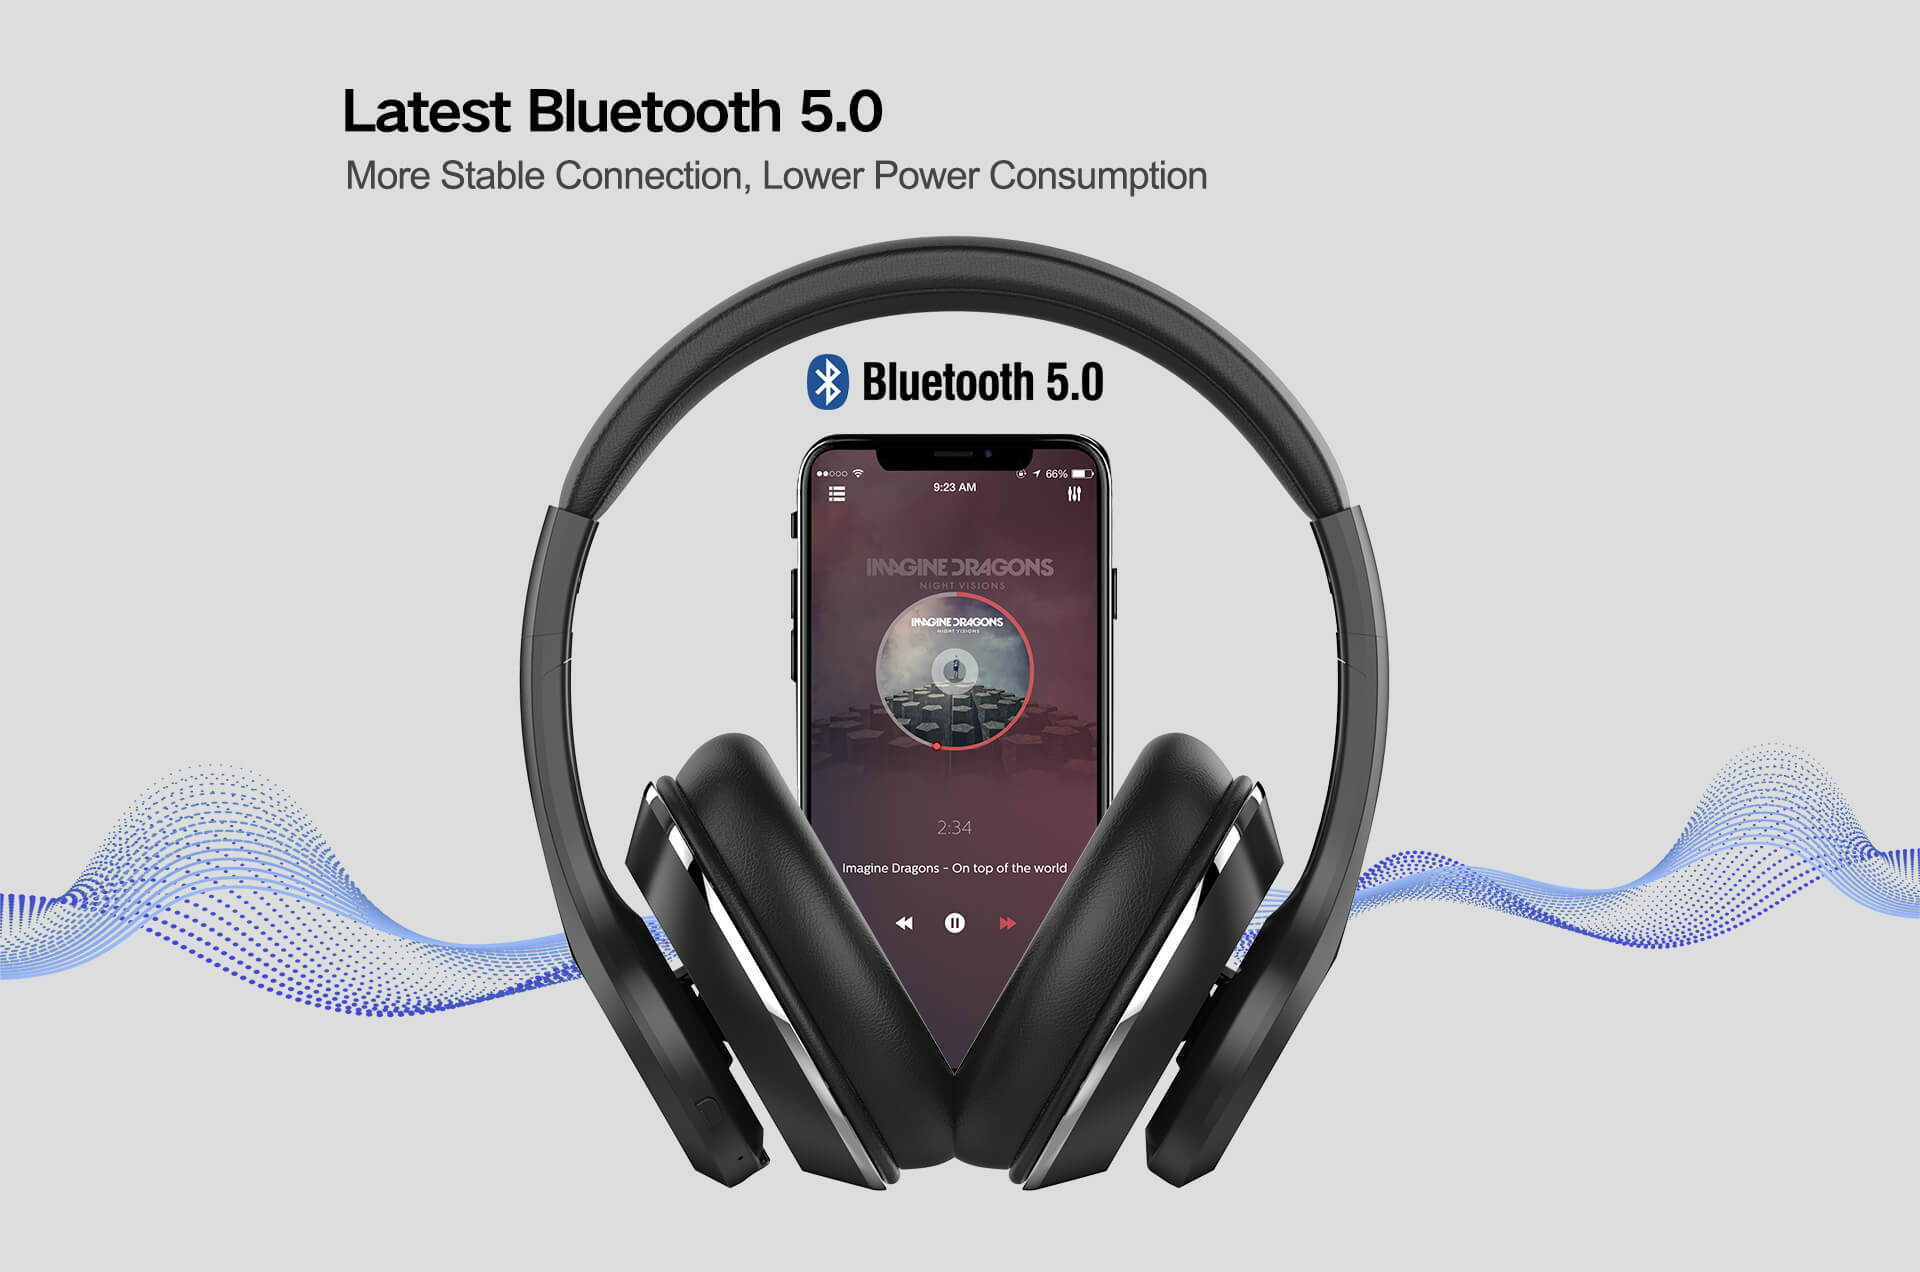 Bluetooth 5.0 Technology